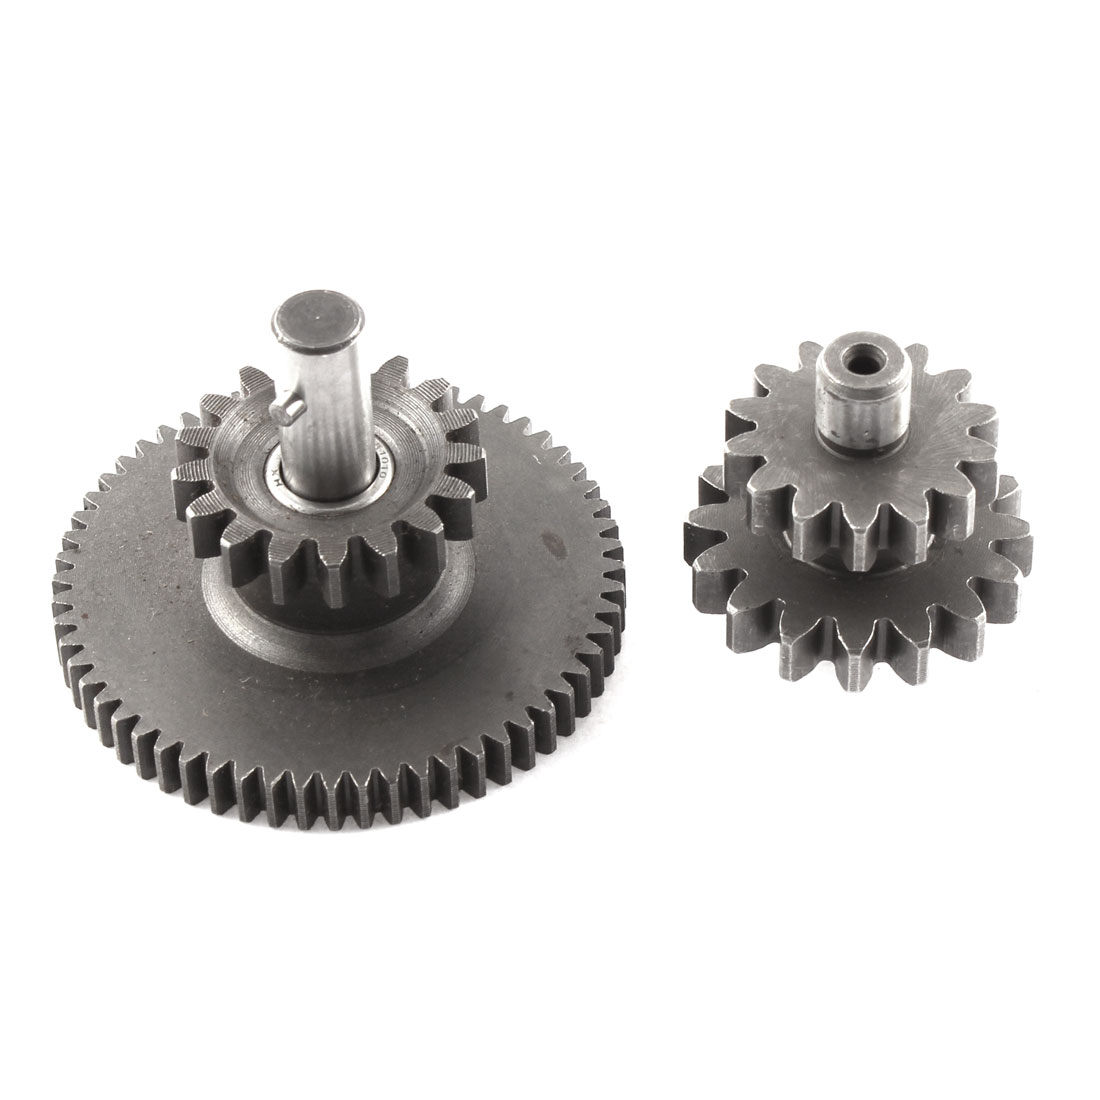 Motorcycle Transmission Gears Shafts Shift for CG200